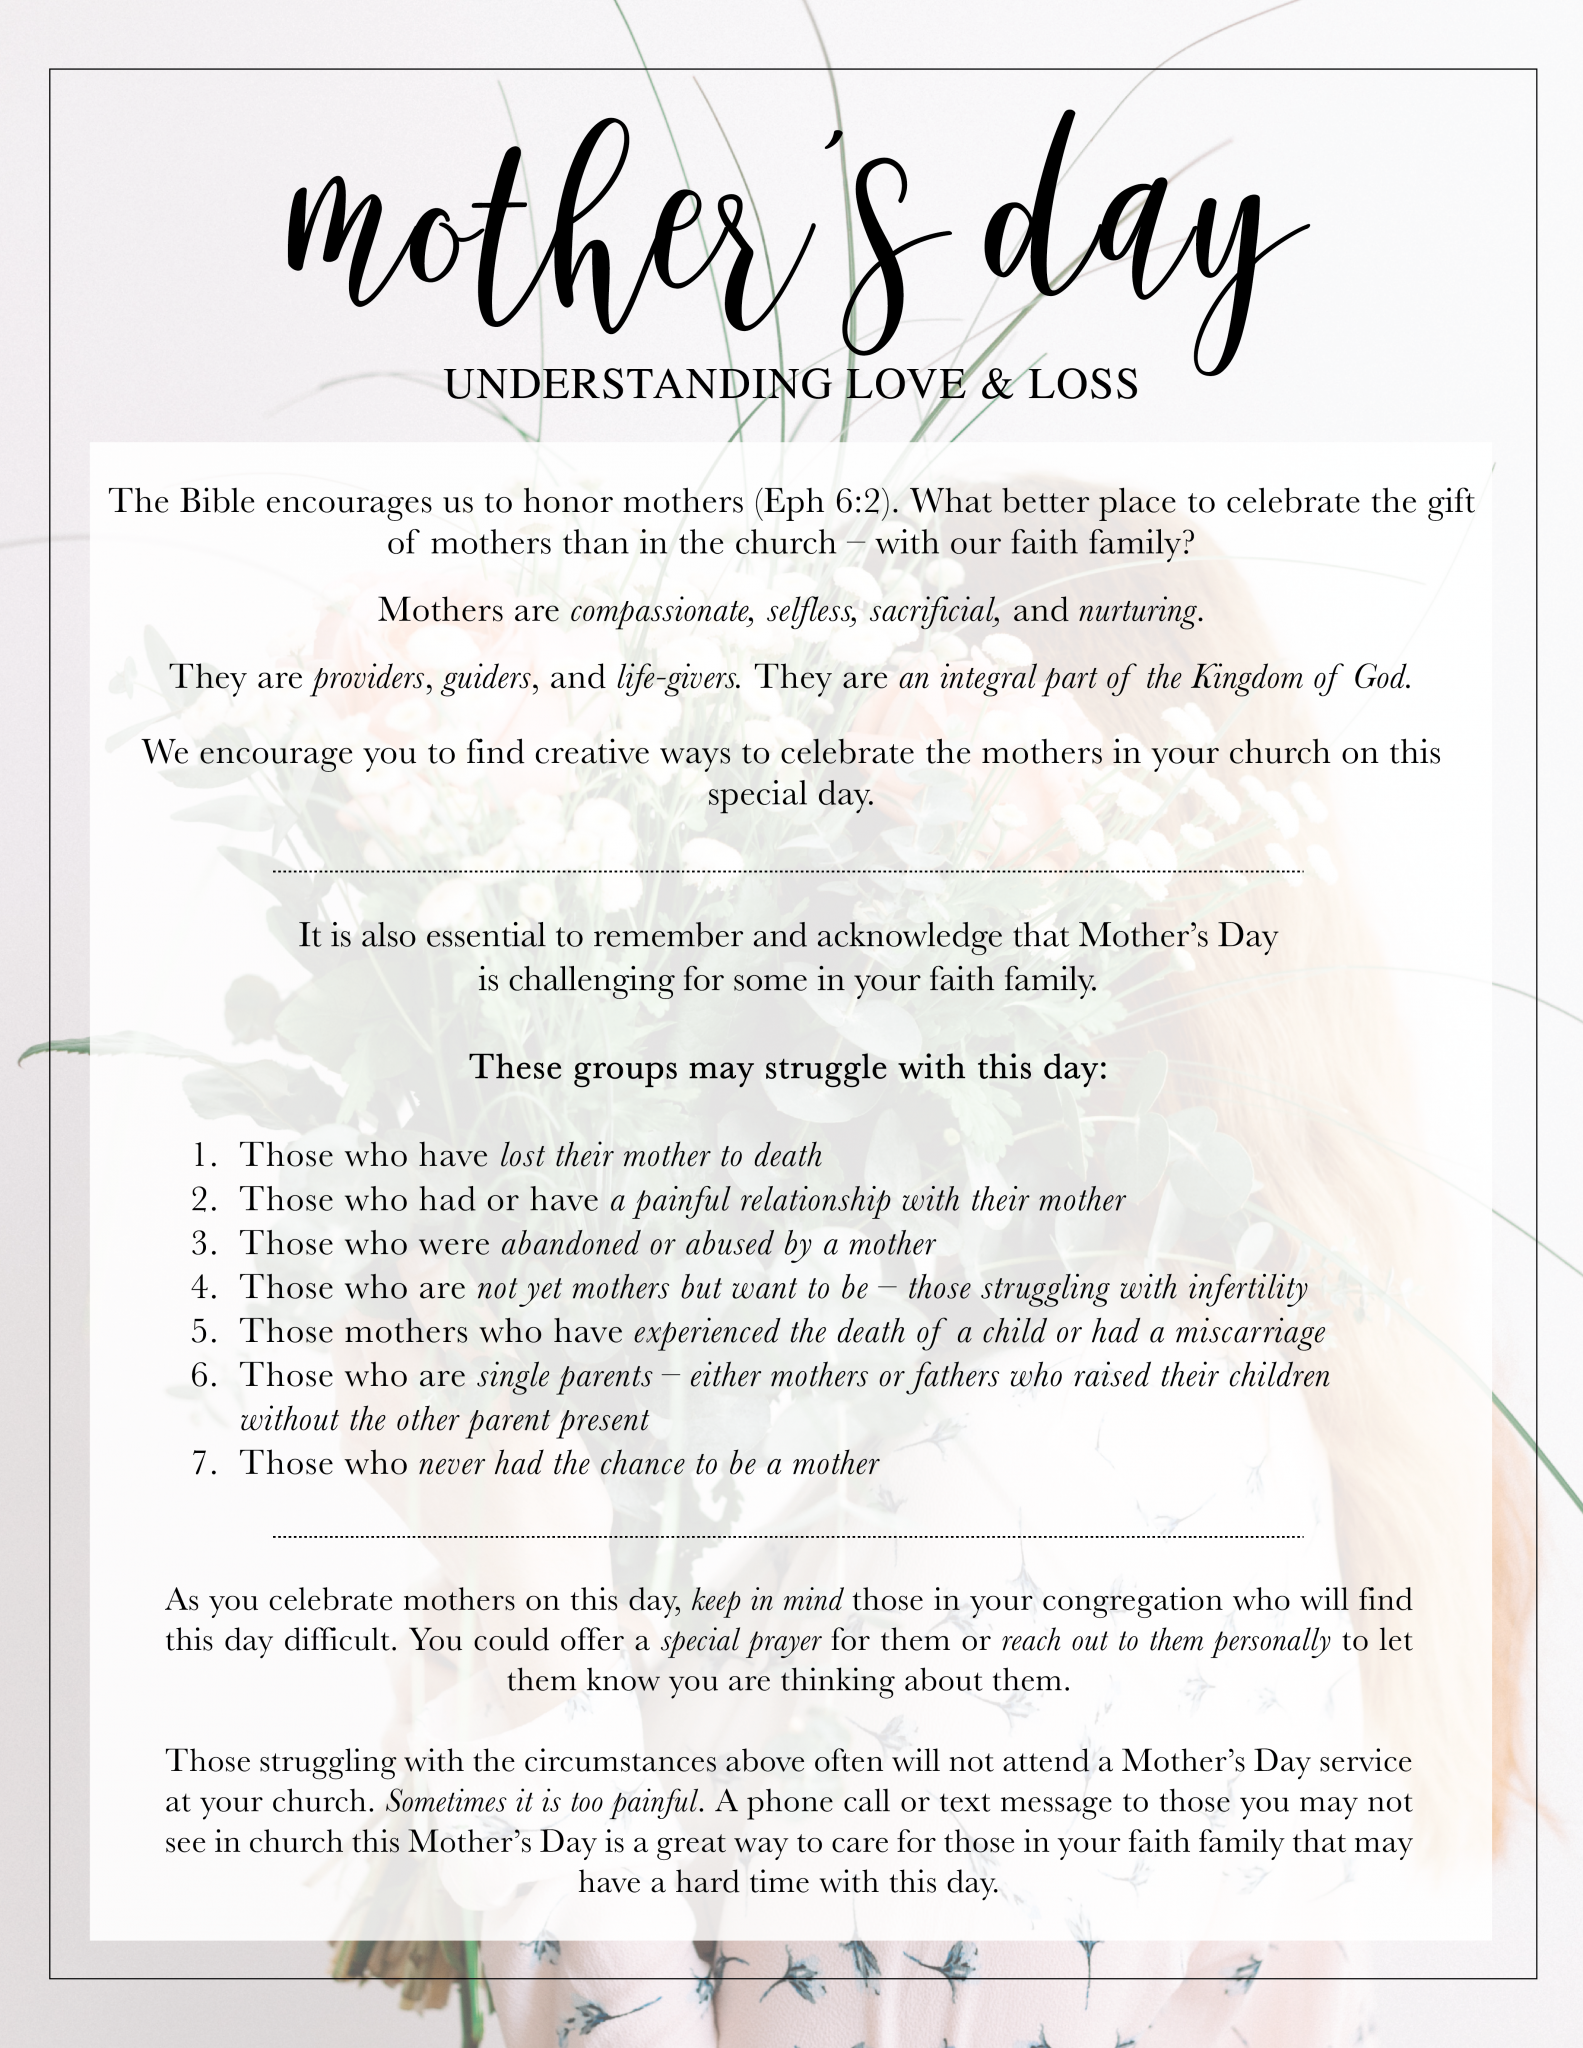 Description of Mother's Day and 7 groups to think about during this day.